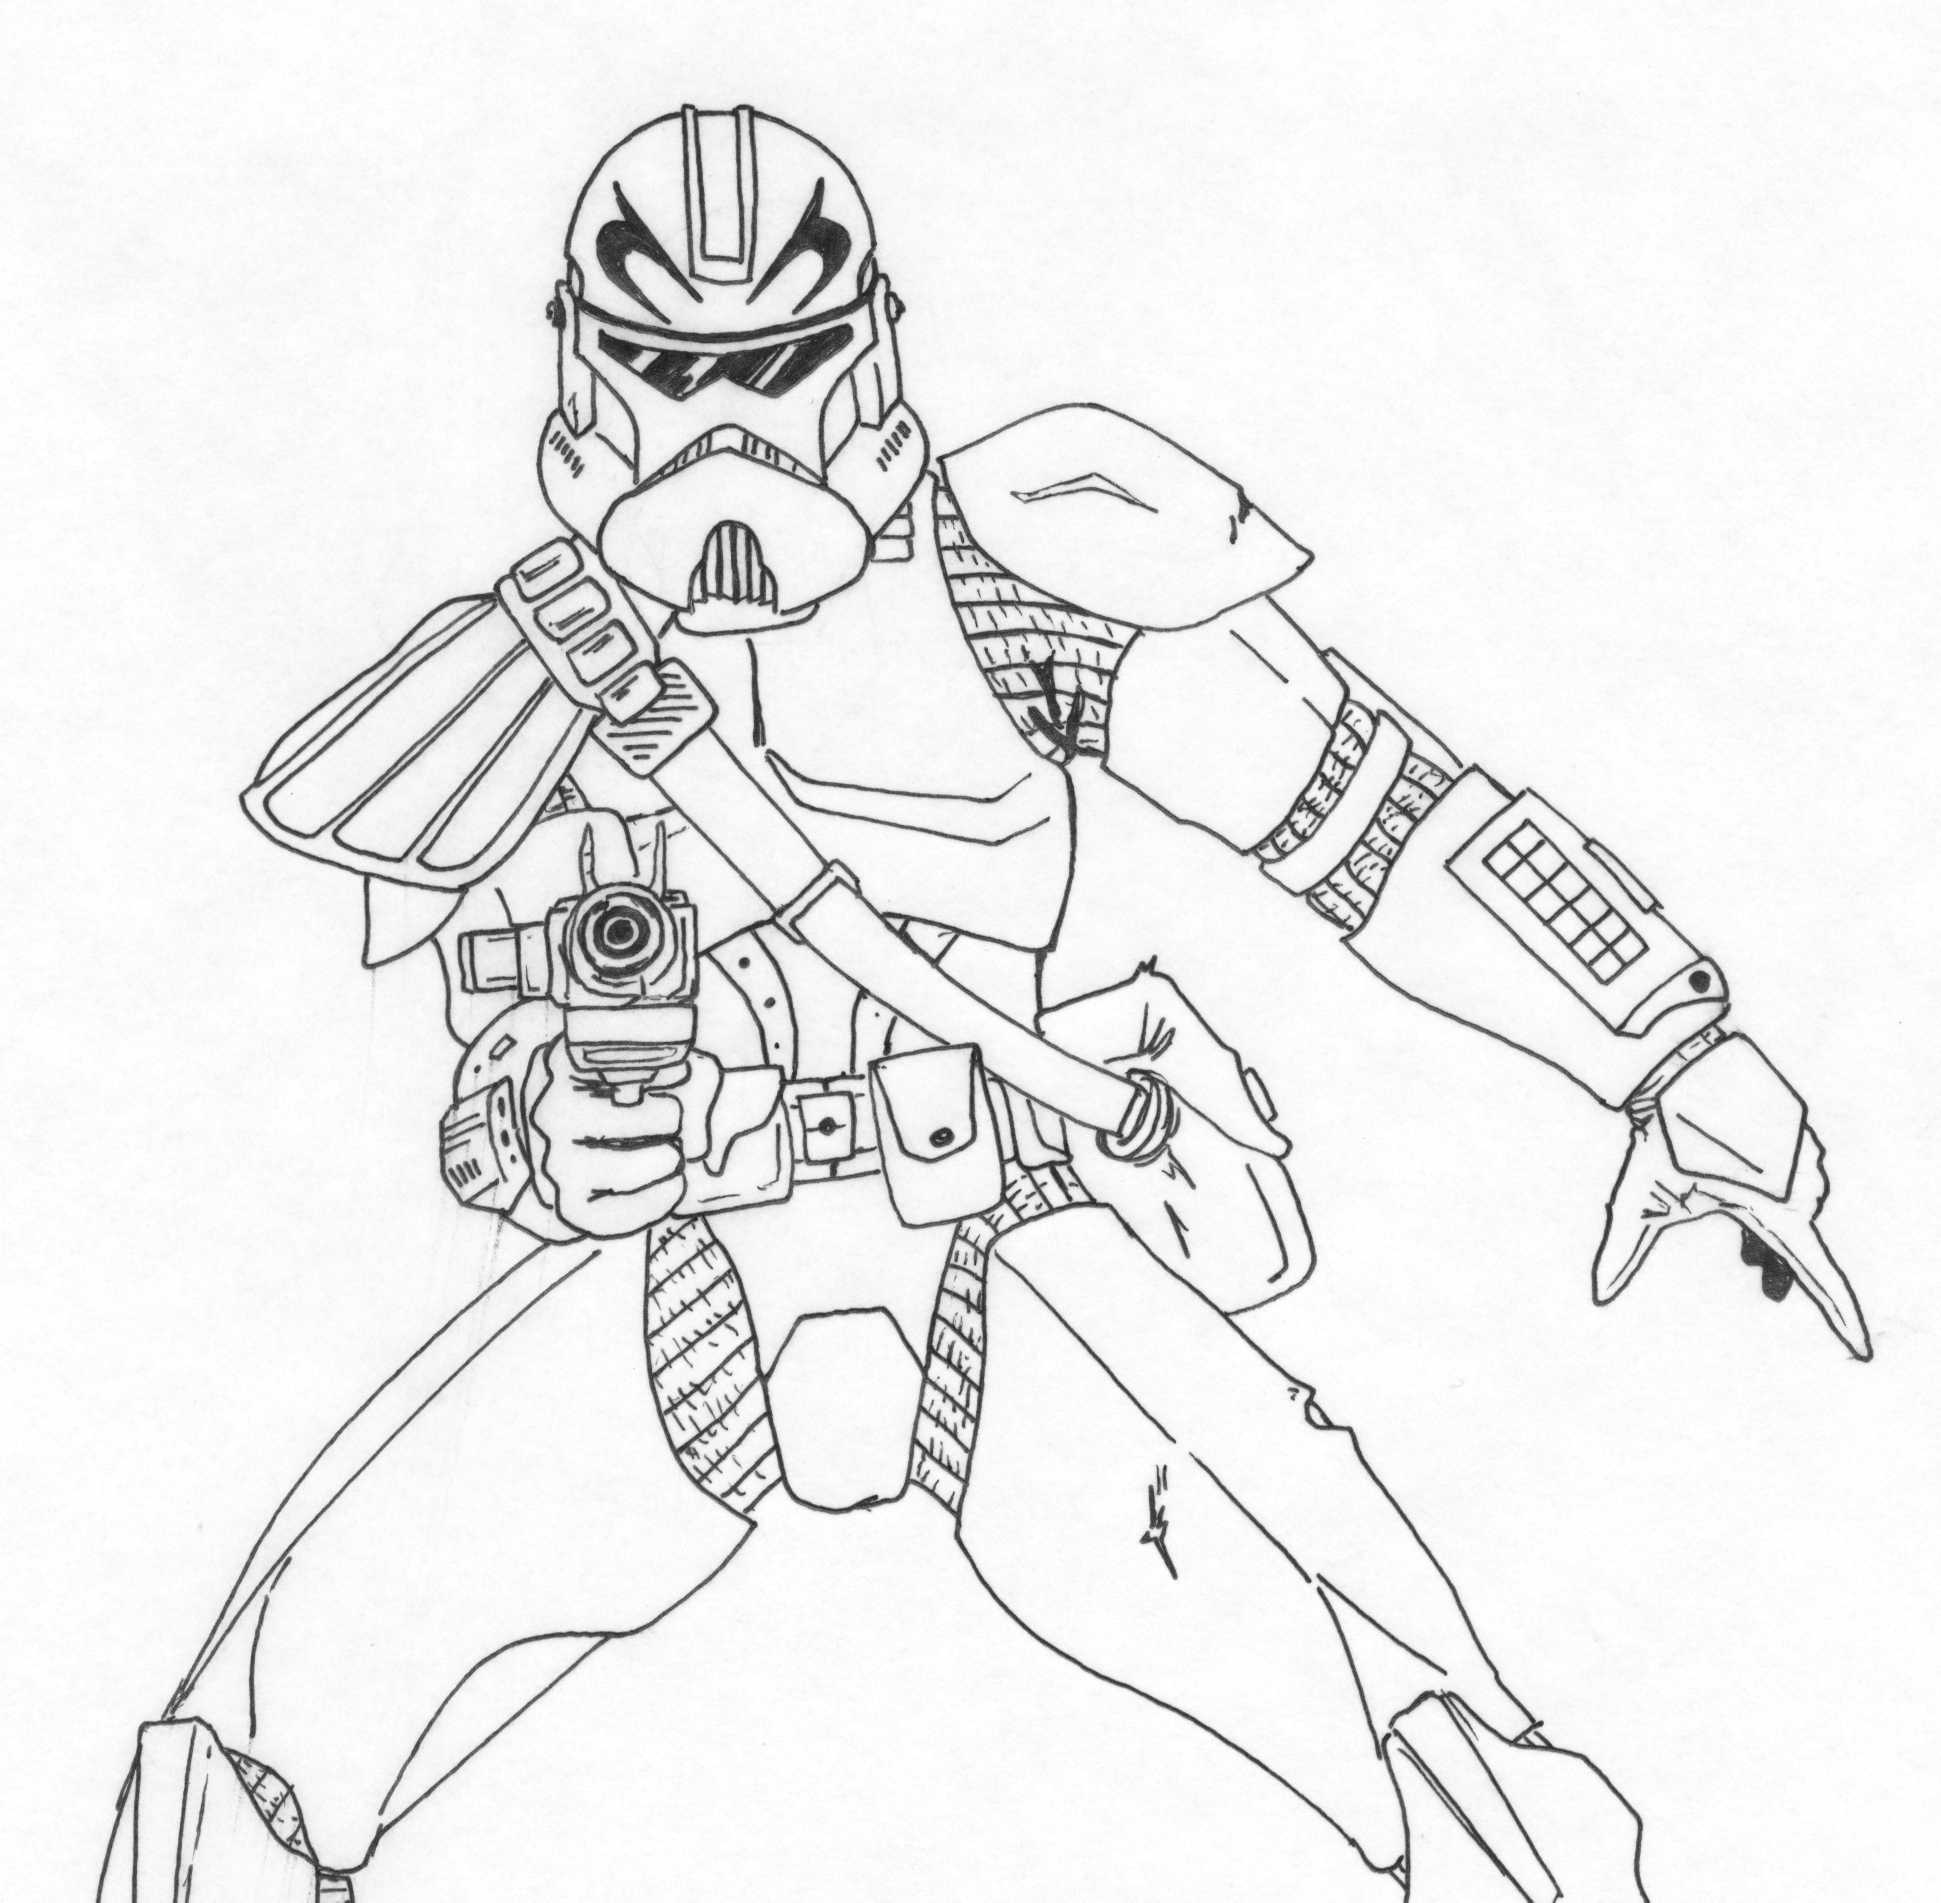 Star Wars Captain Rex Coloring Page - Coloring Home